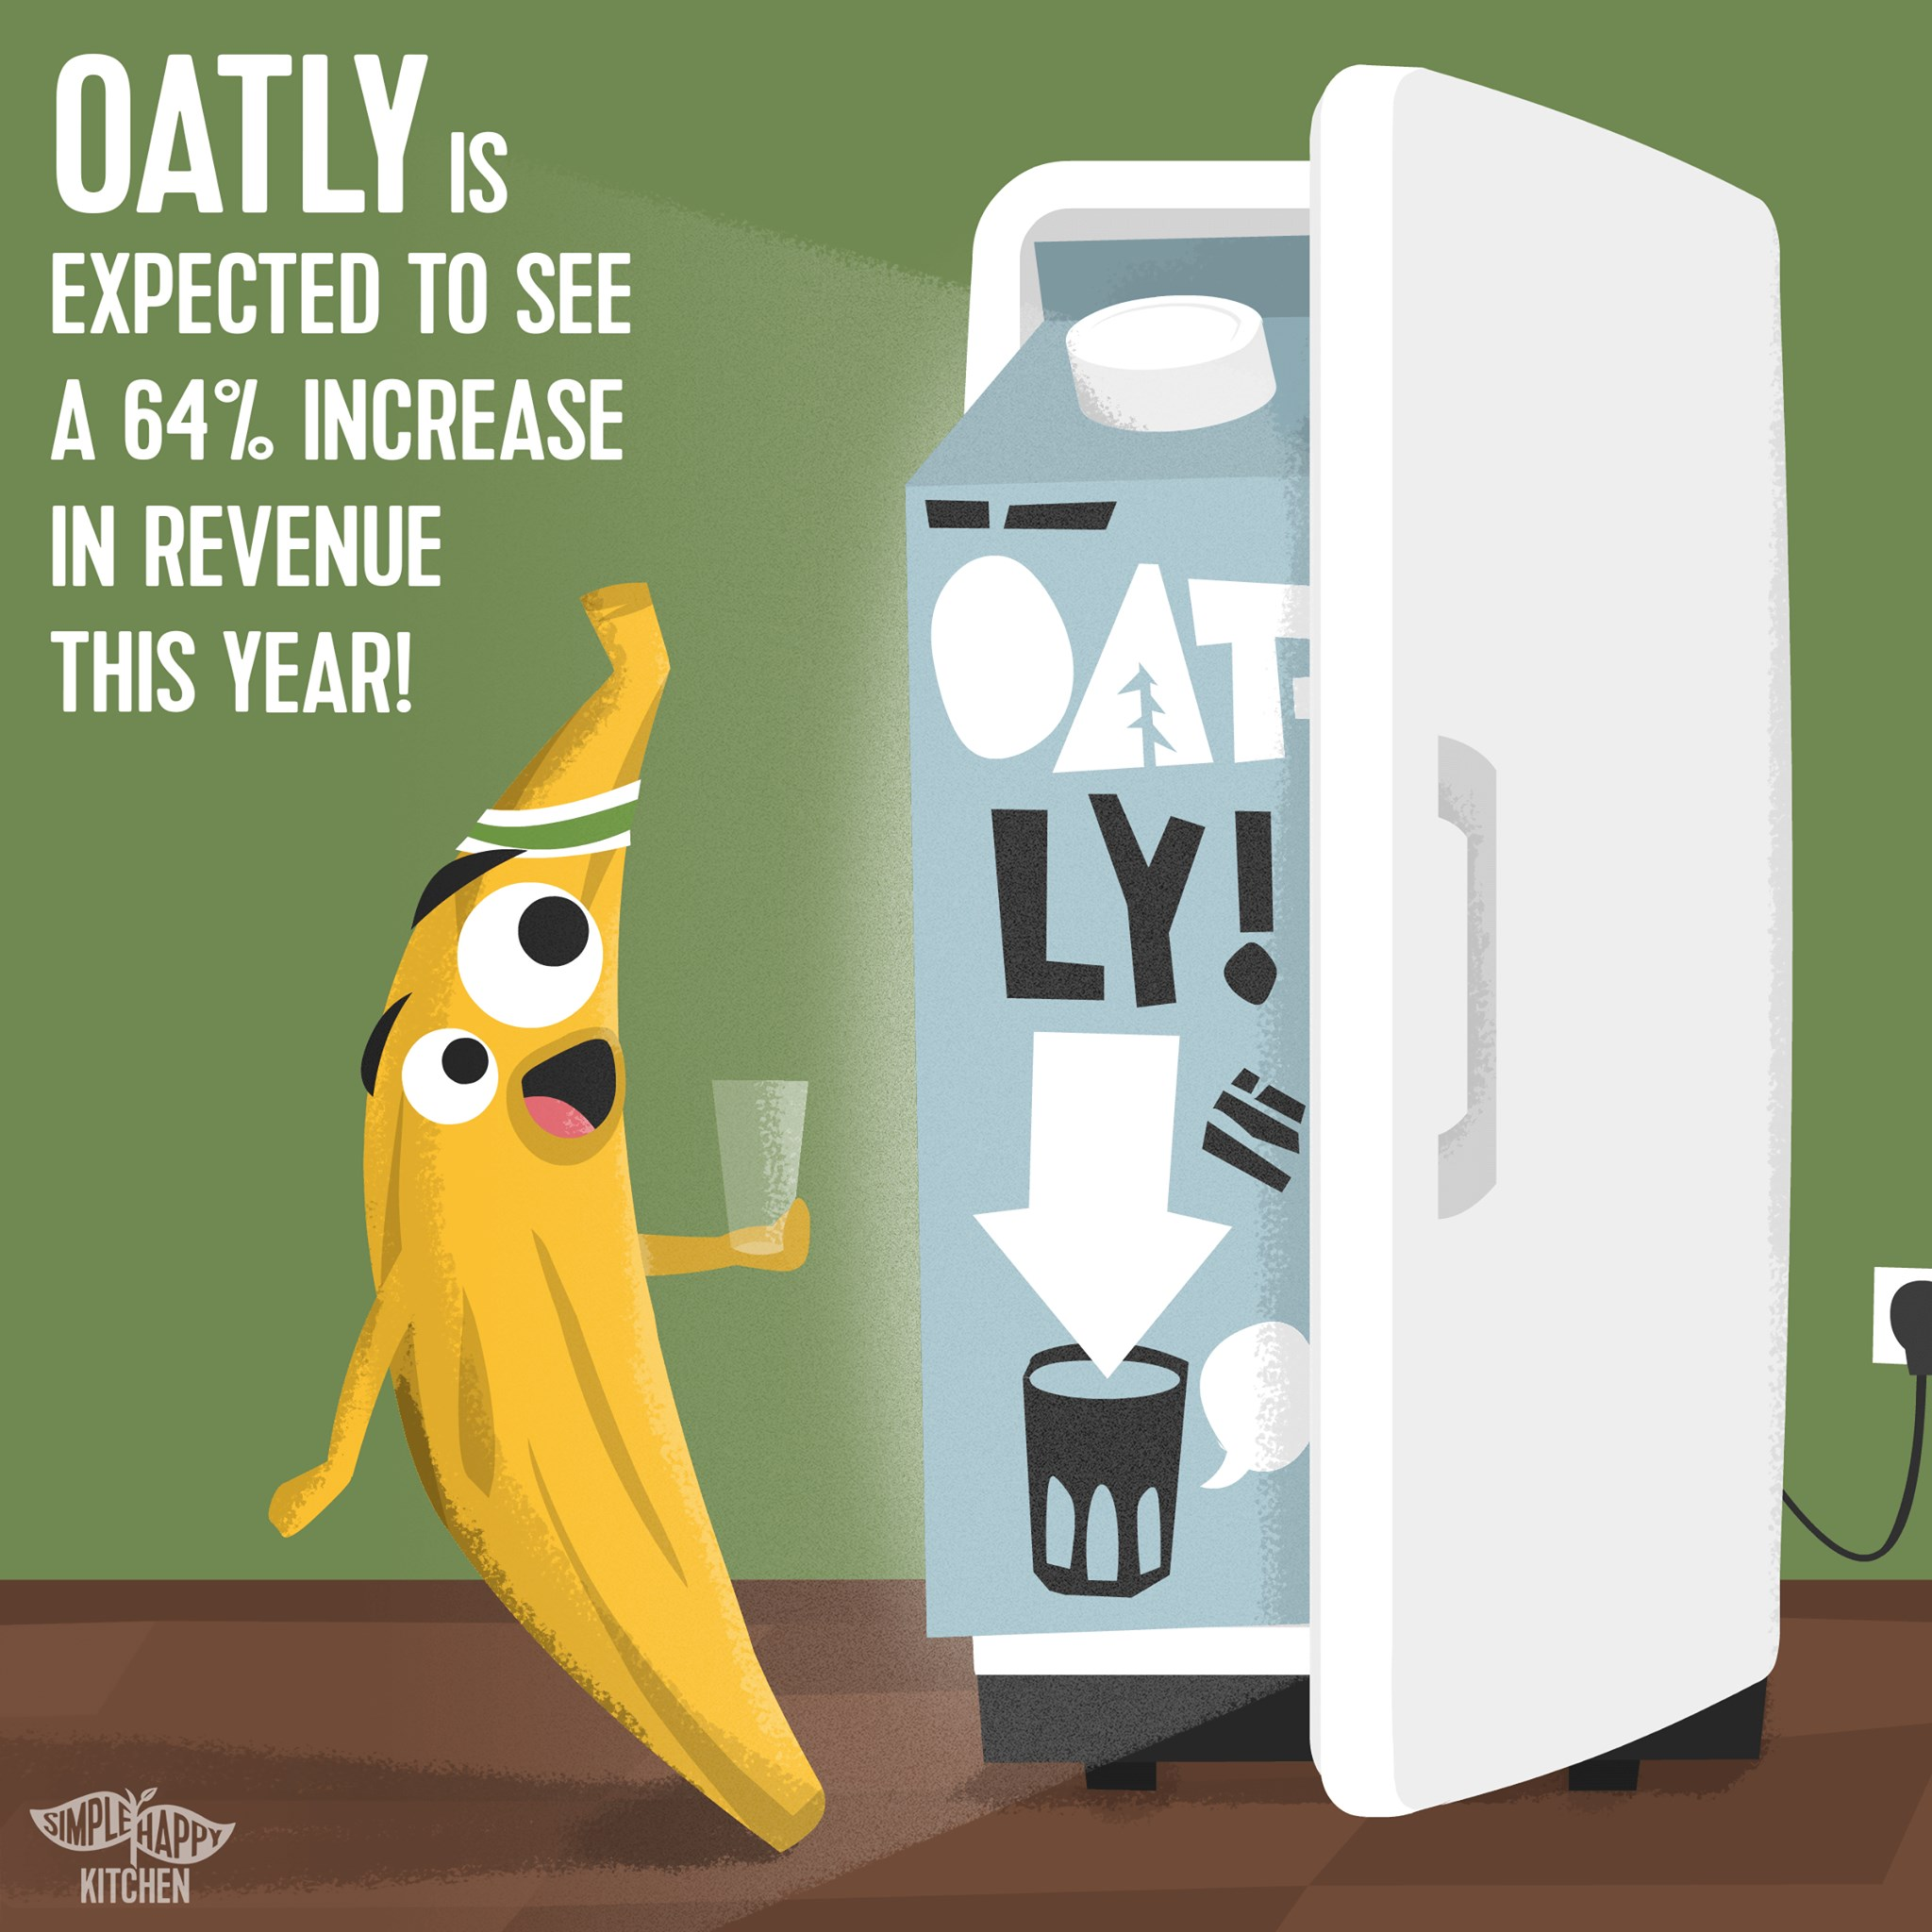 Oatly is expected to see a 64% increase in revenue this year!